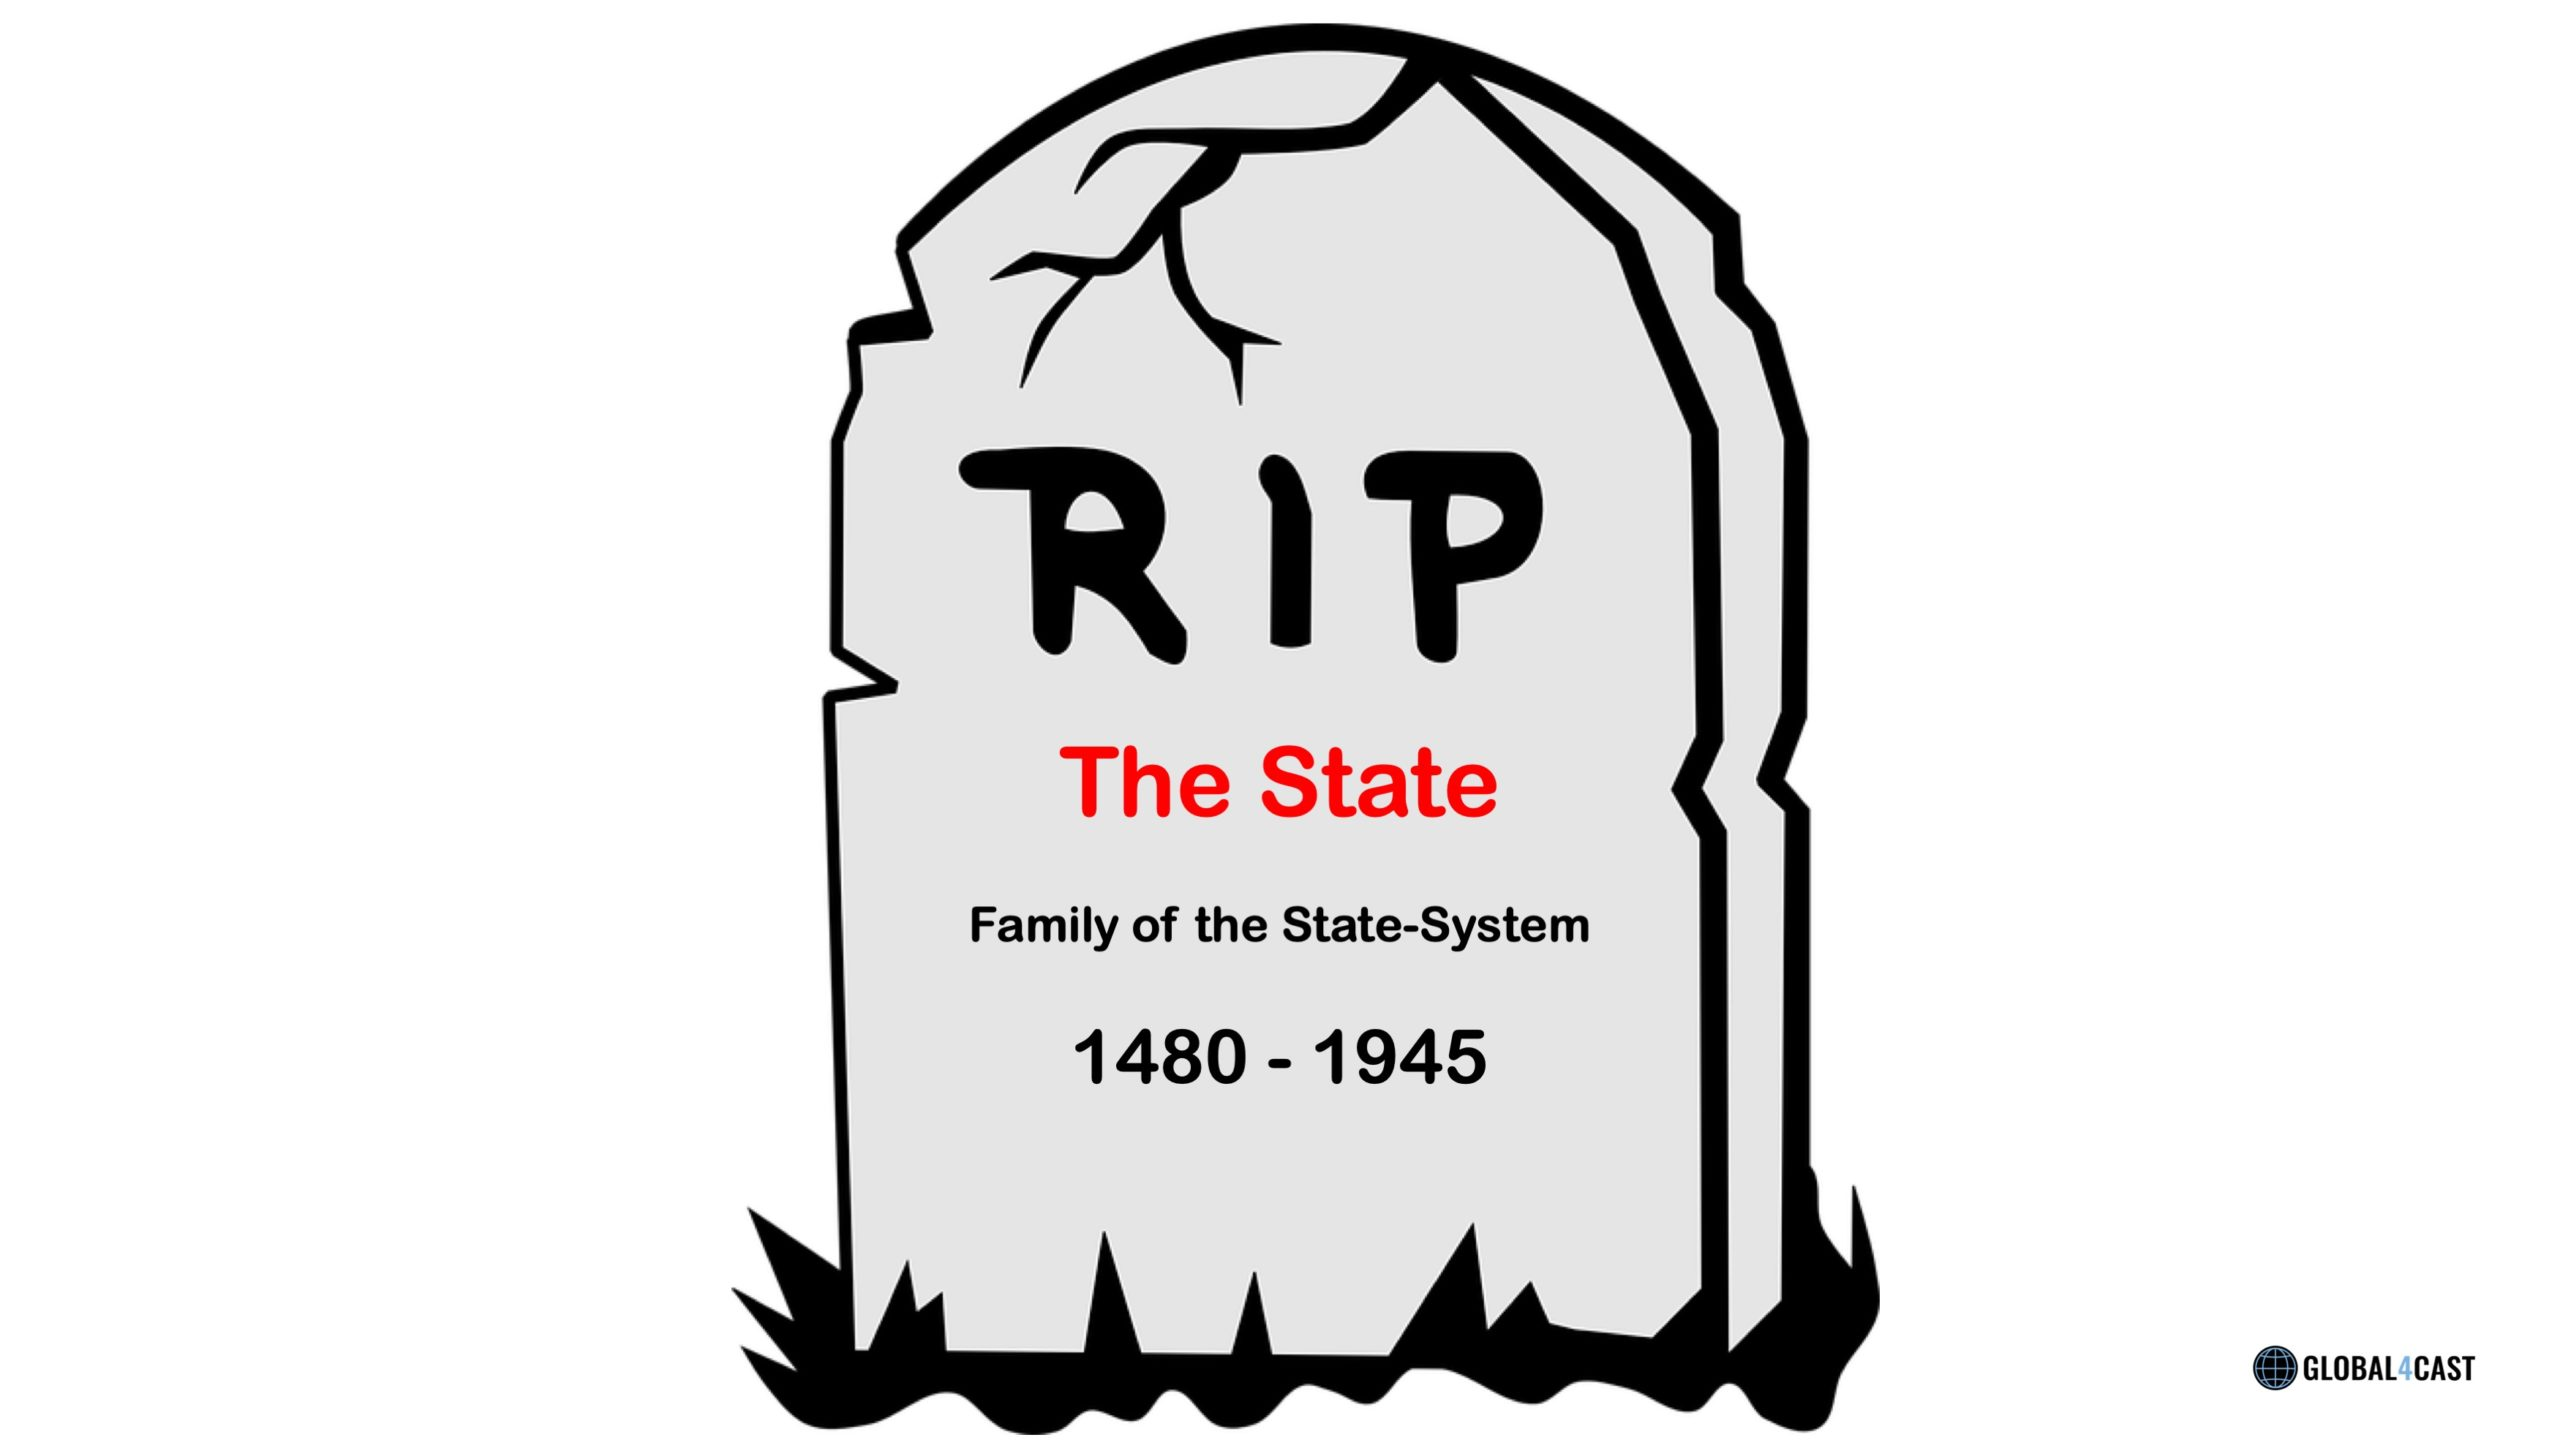 The State: R.I.P.?